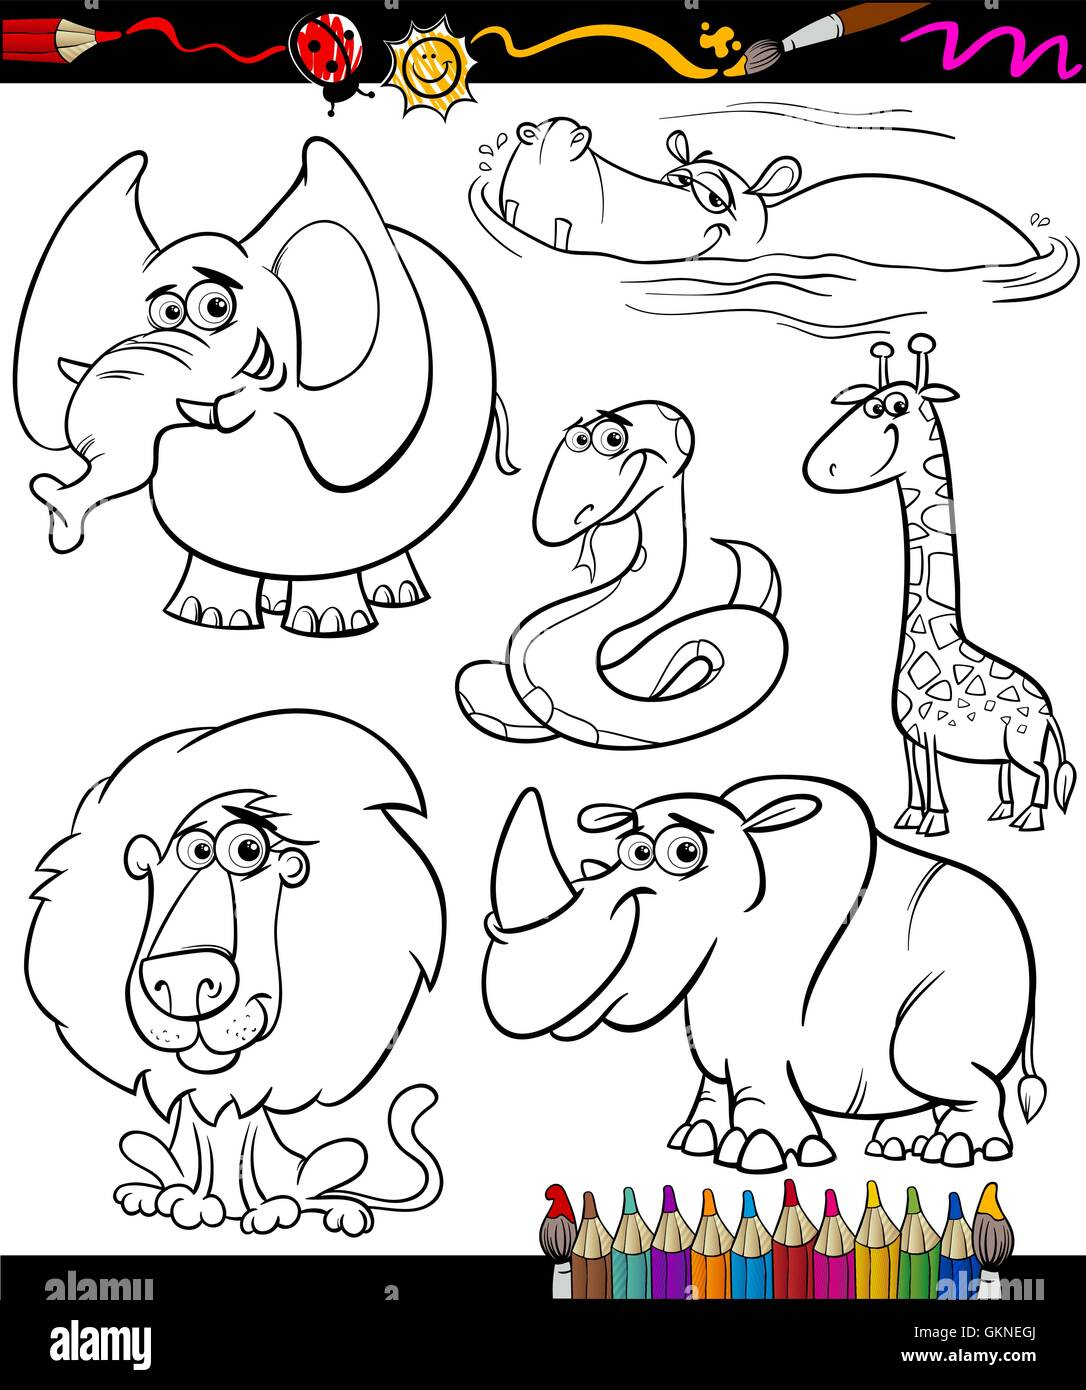 Elephant Lion Cat Big Feline Predator Snake Hippopotamus Giraffe Rhinoceros Cartoon Rhino Laugh